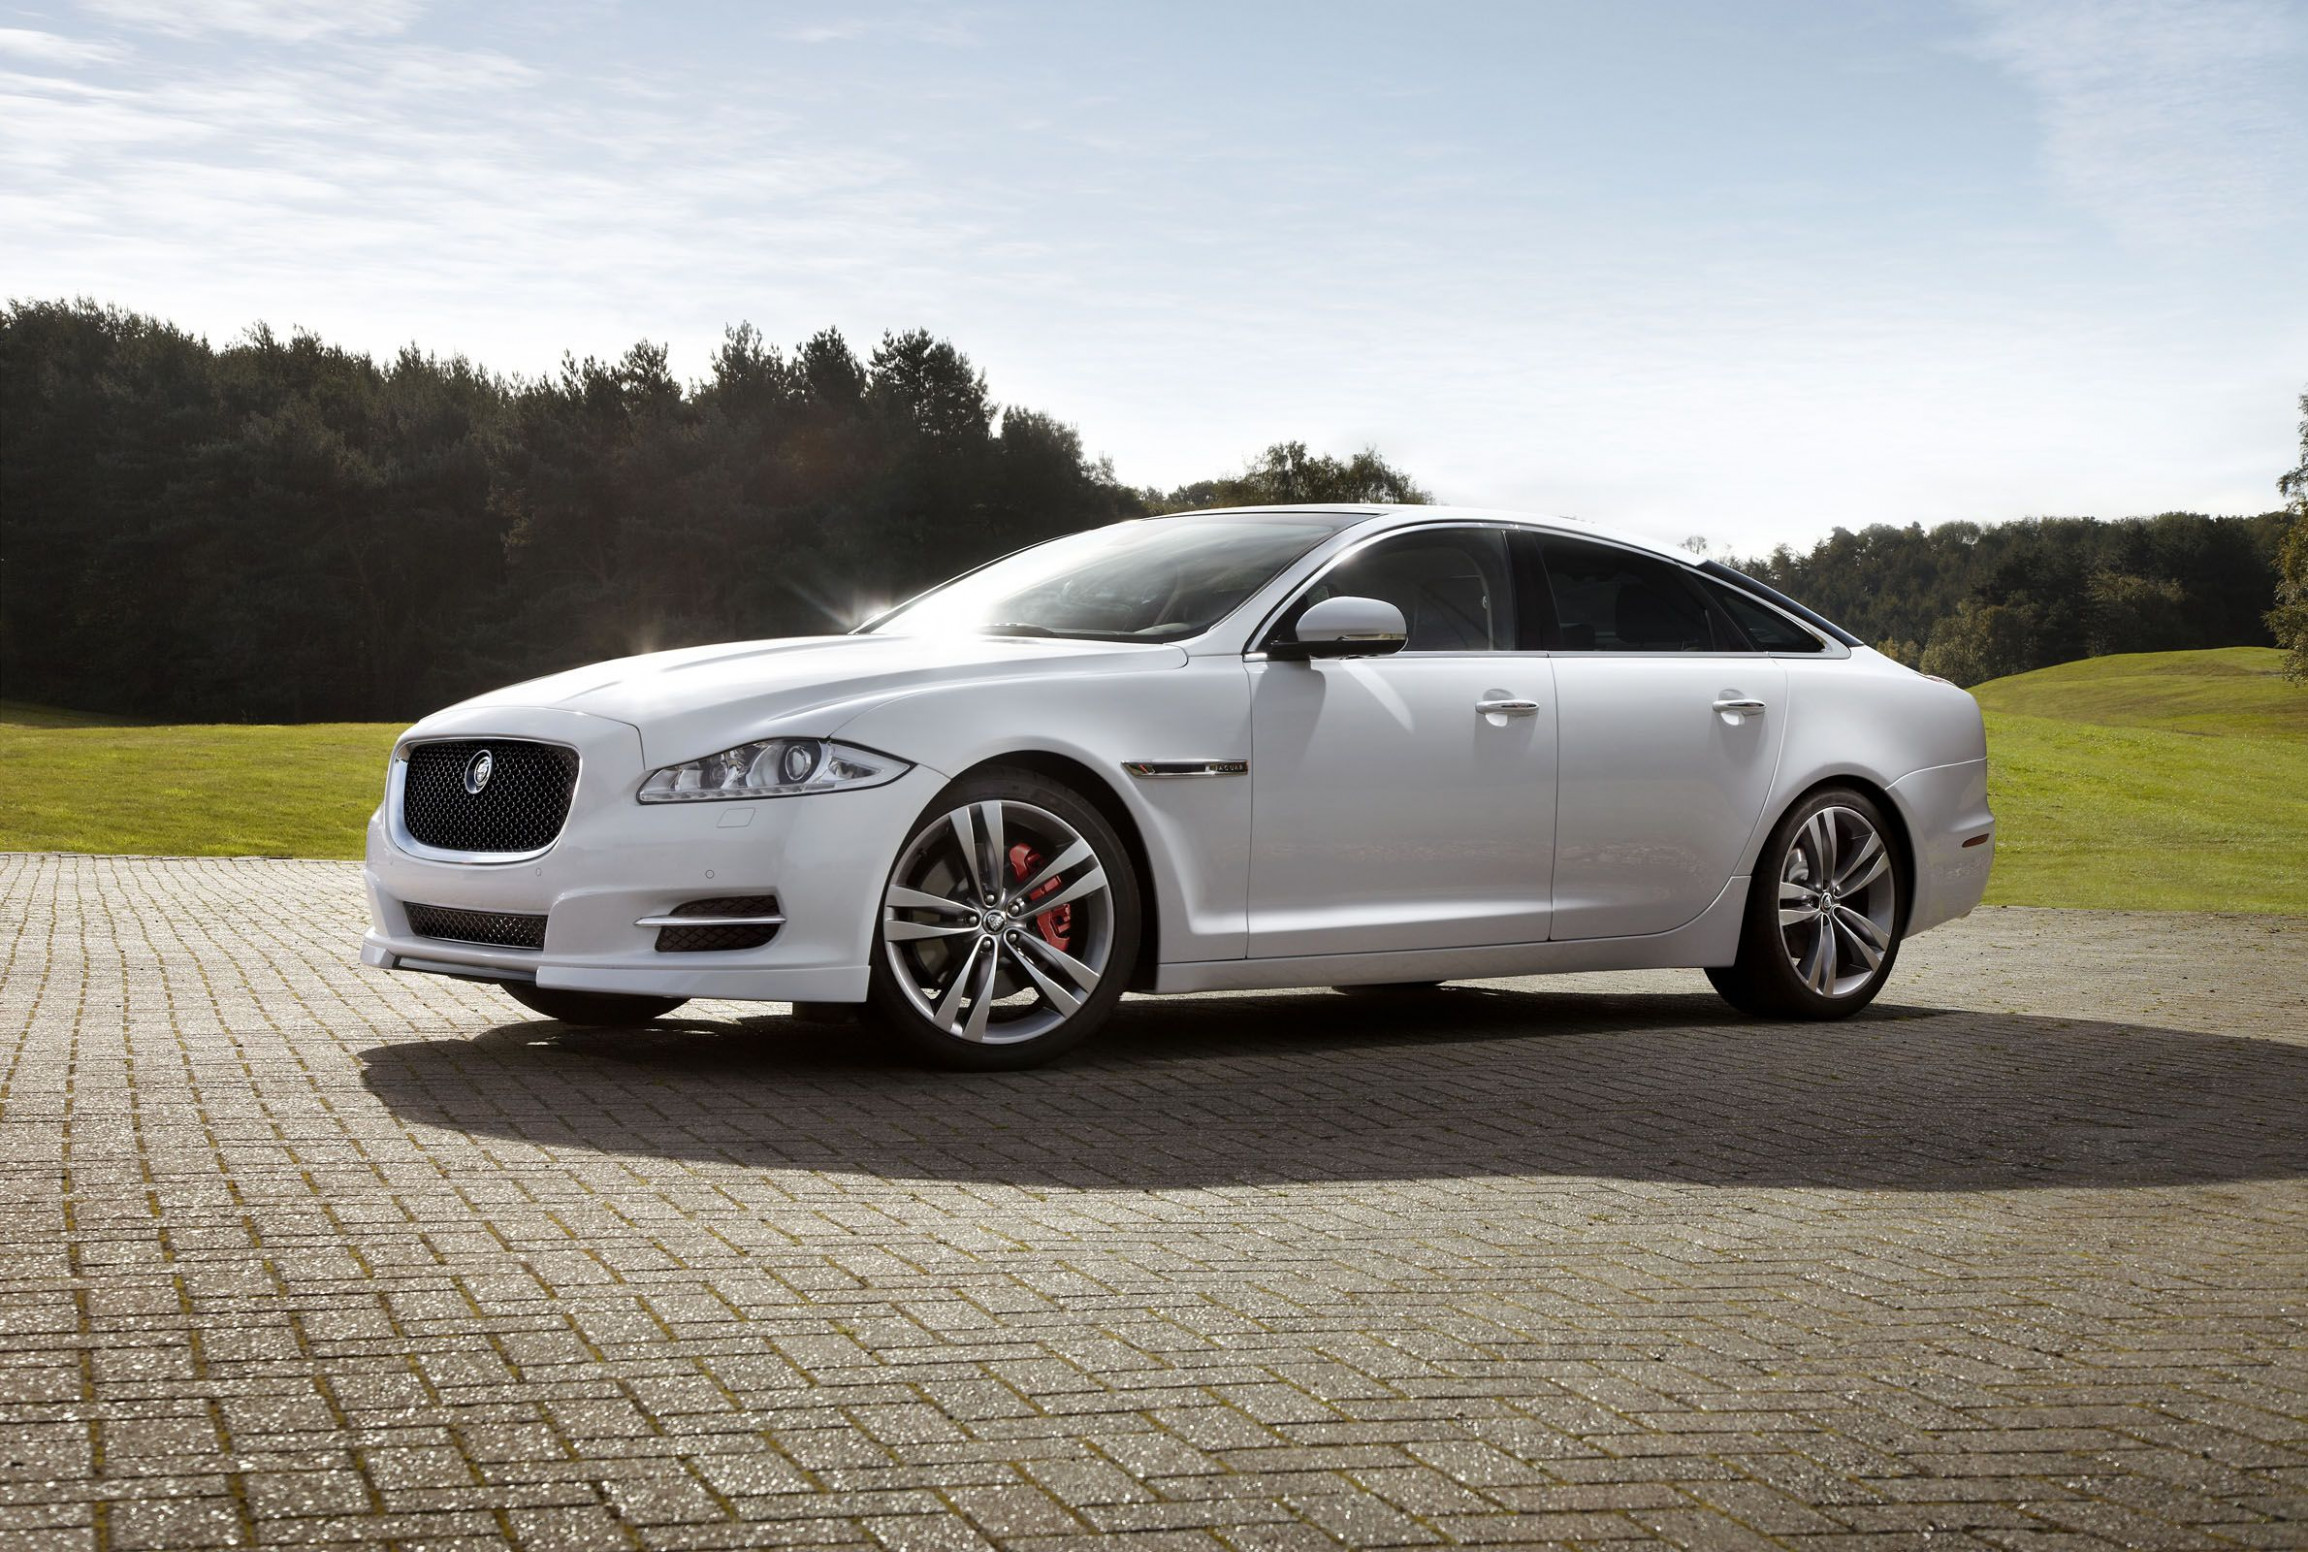 The new 7 White Jaguar XJ | Jaguar xjl, Jaguar xj, Jaguar car - 2020 white jaguar xj